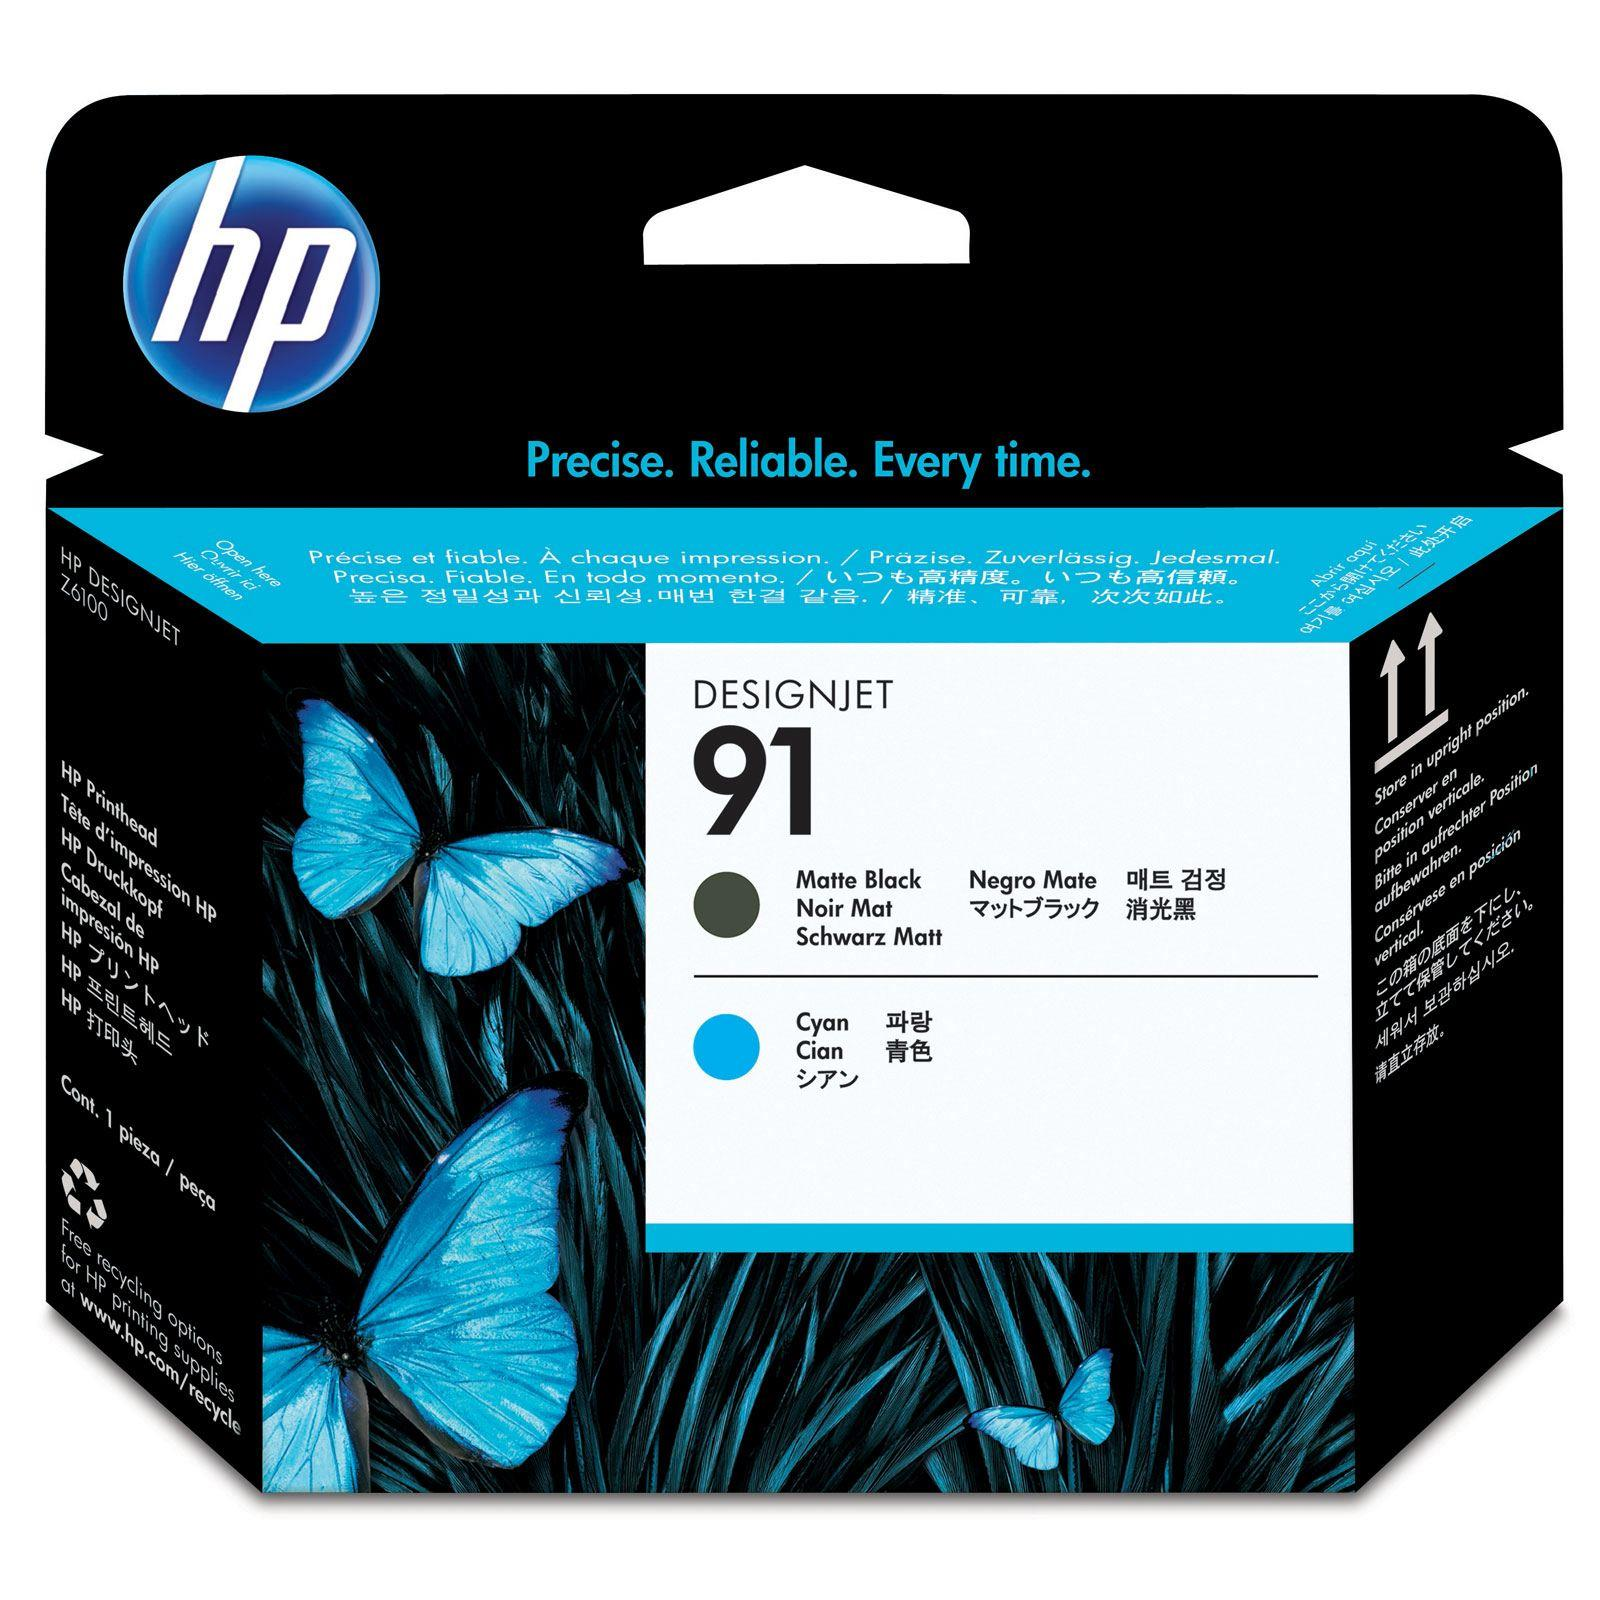 HP No 91 Matte Black and Cyan Printhead Ref C9460A 3 to 5 Day Leadtime